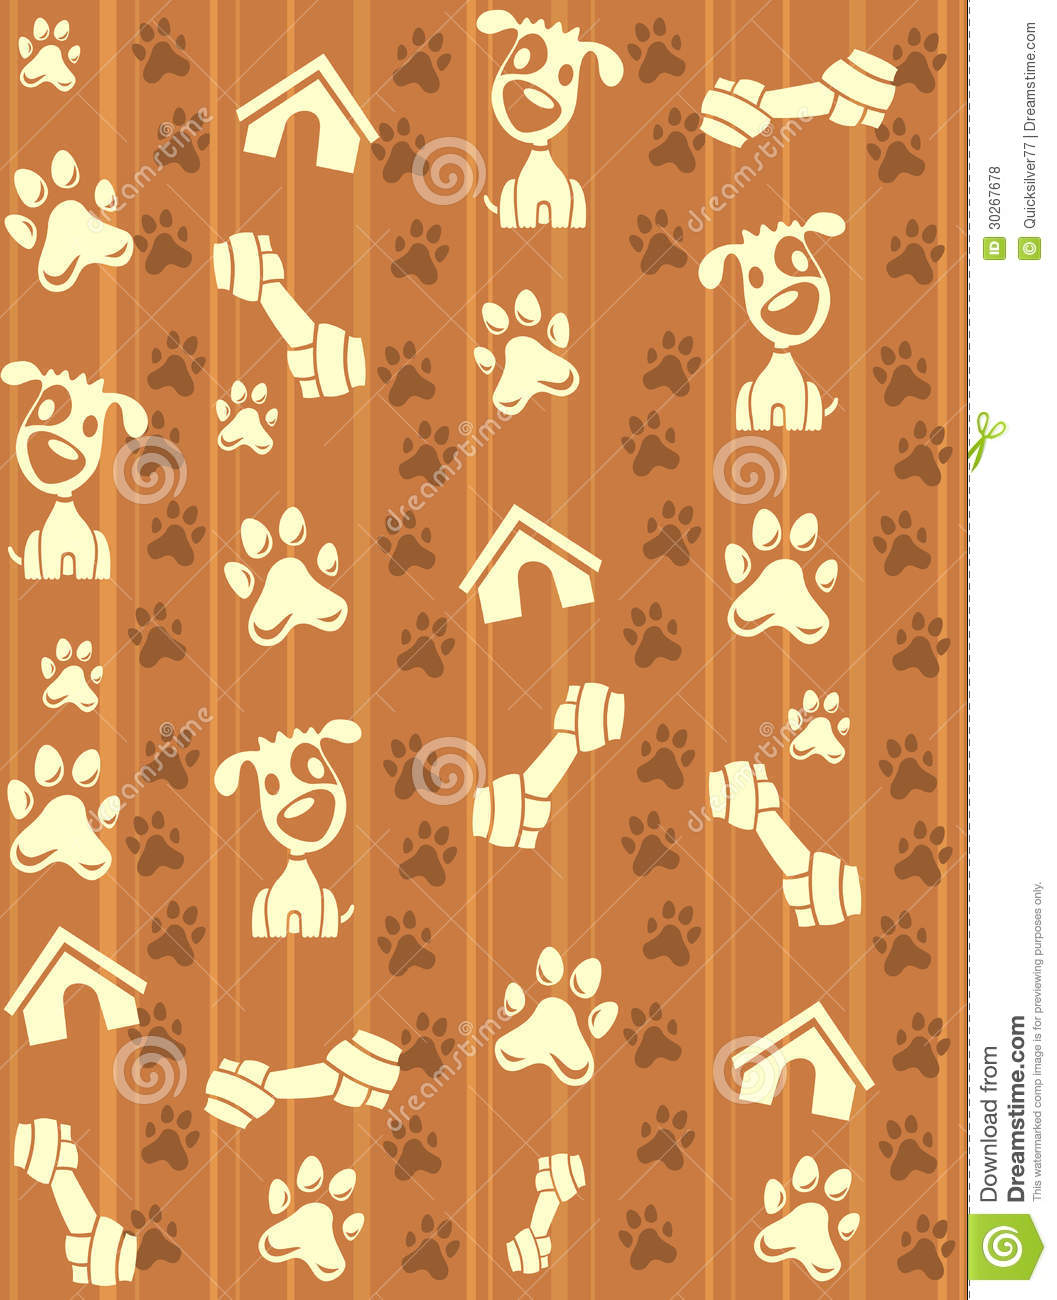 Free Animal Wallpaper Backgrounds Dog Themed Background Royalty Free Stock Photos Image